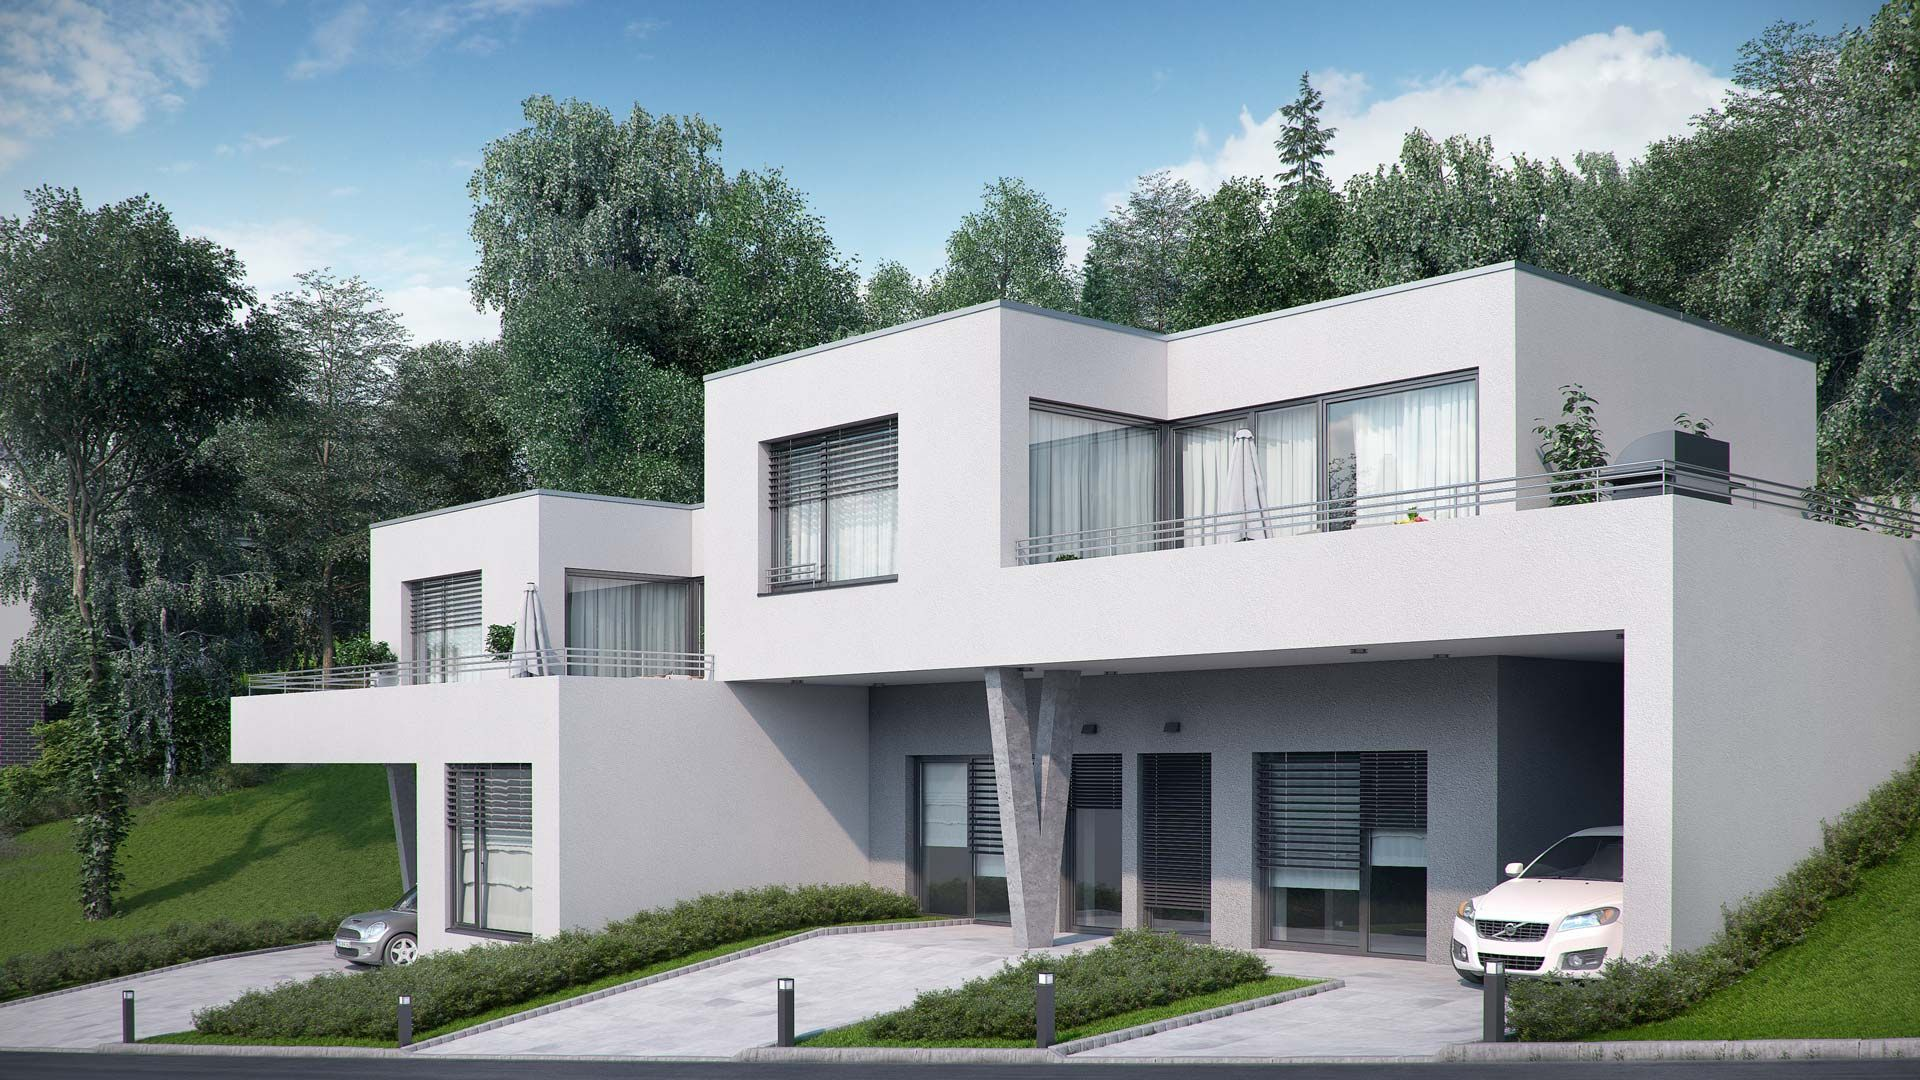 Visualization of duplex house in Walding, Austria – front elevation with environment